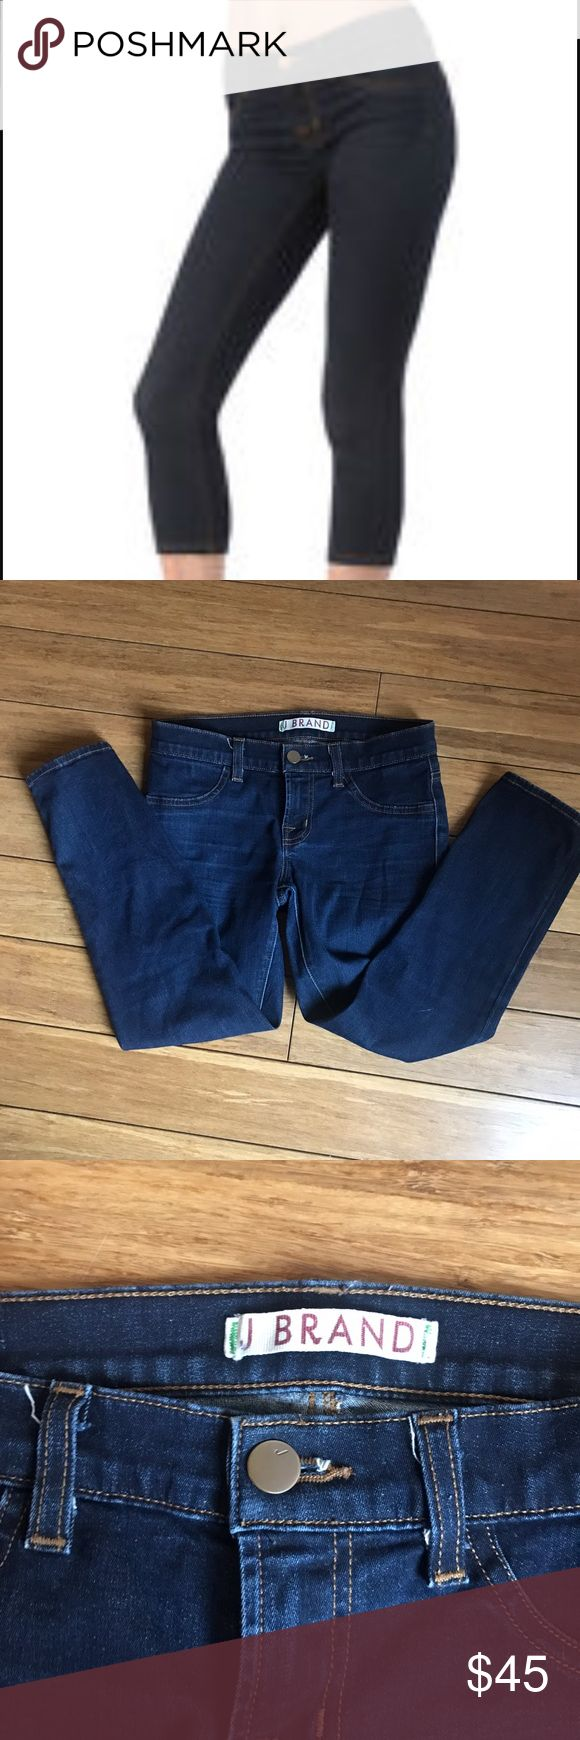 J Brand Starless Skinny Capri, 25! Great condition, J Brand Starless Skinny Capri in 25. Stretchy and amazing fit! J Brand Jeans Ankle & Cropped